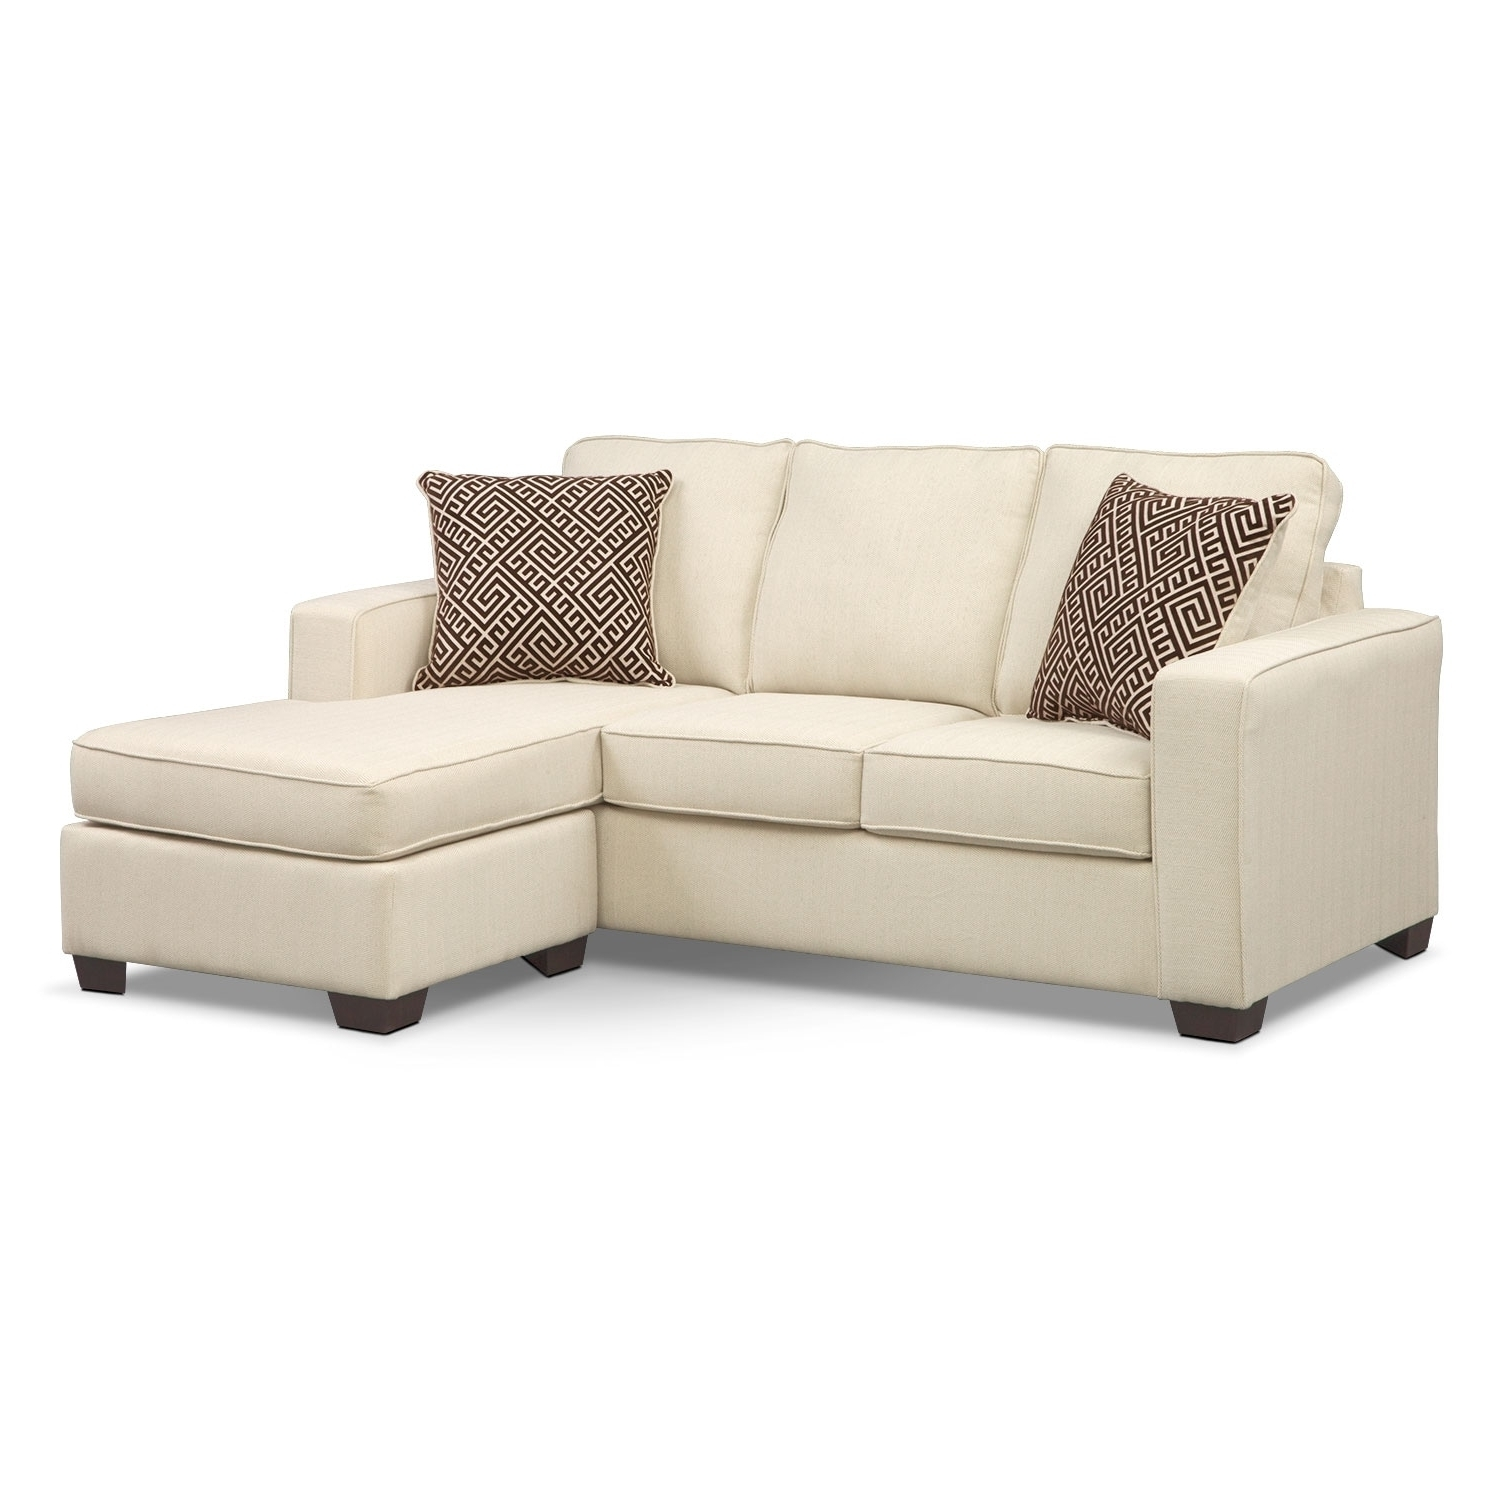 Preferred Sterling Innerspring Sleeper Sofa With Chaise – Beige (View 11 of 15)